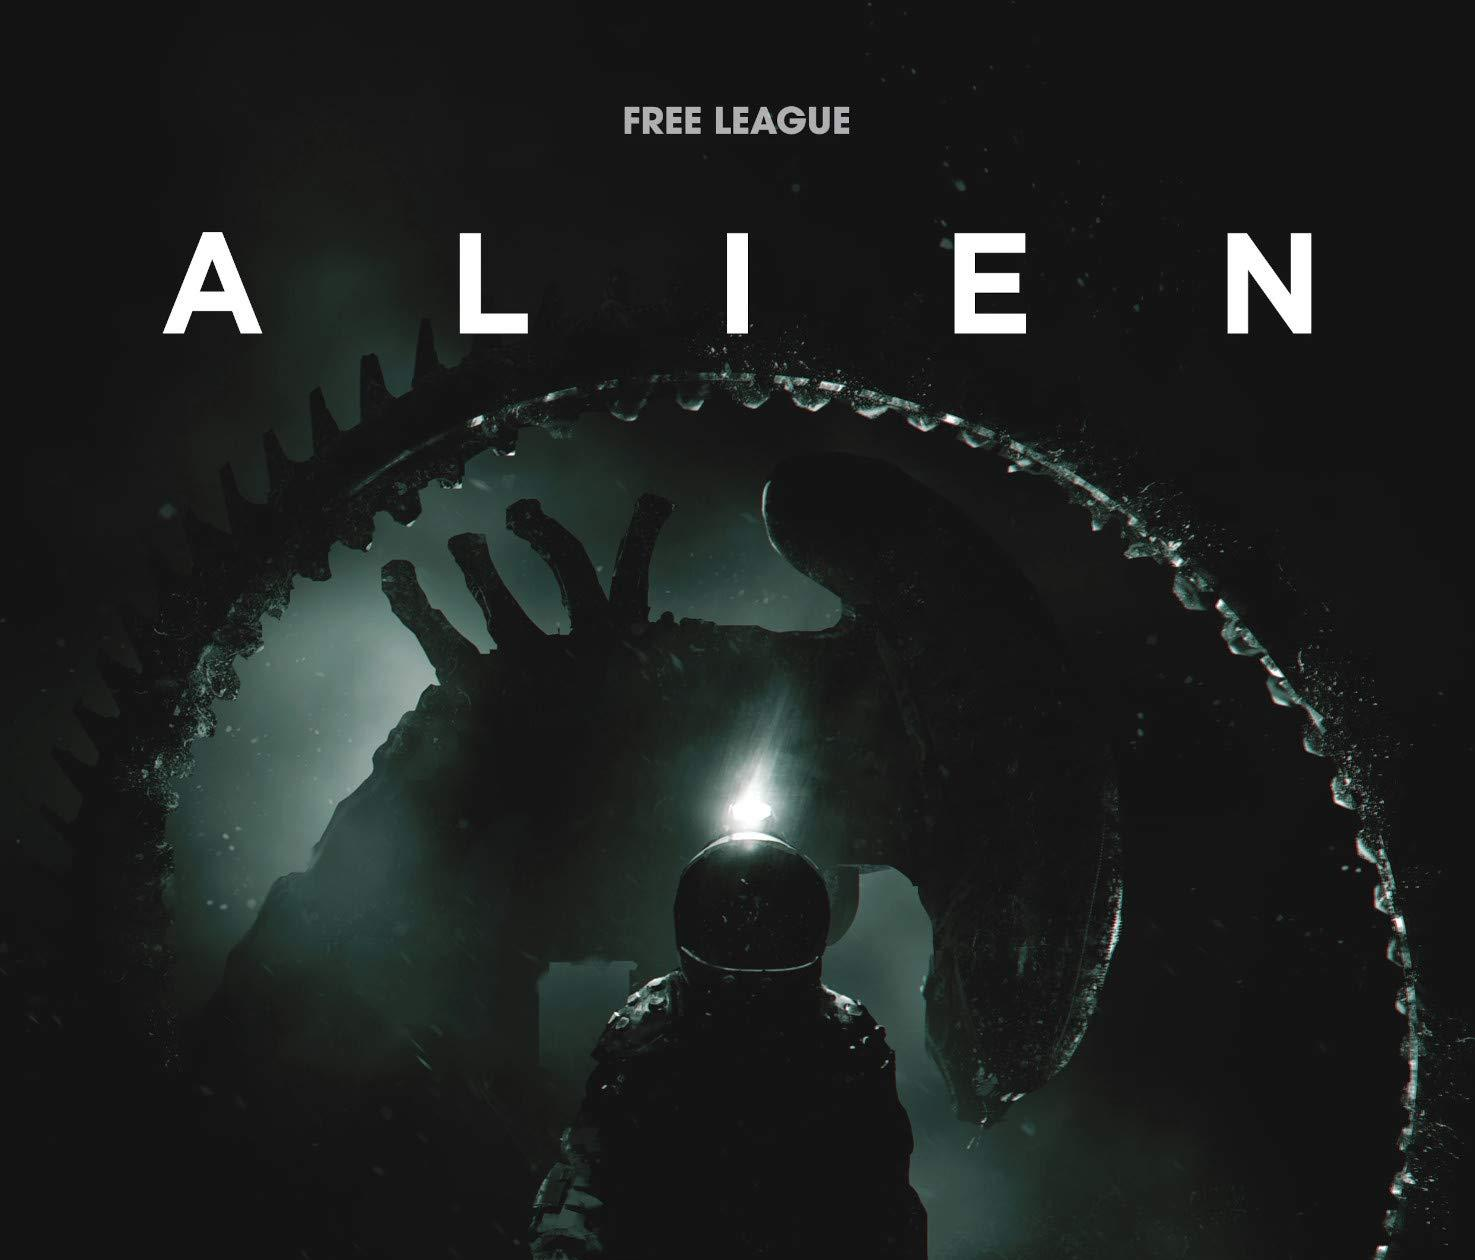 Cover of the Alien RPG from Free League